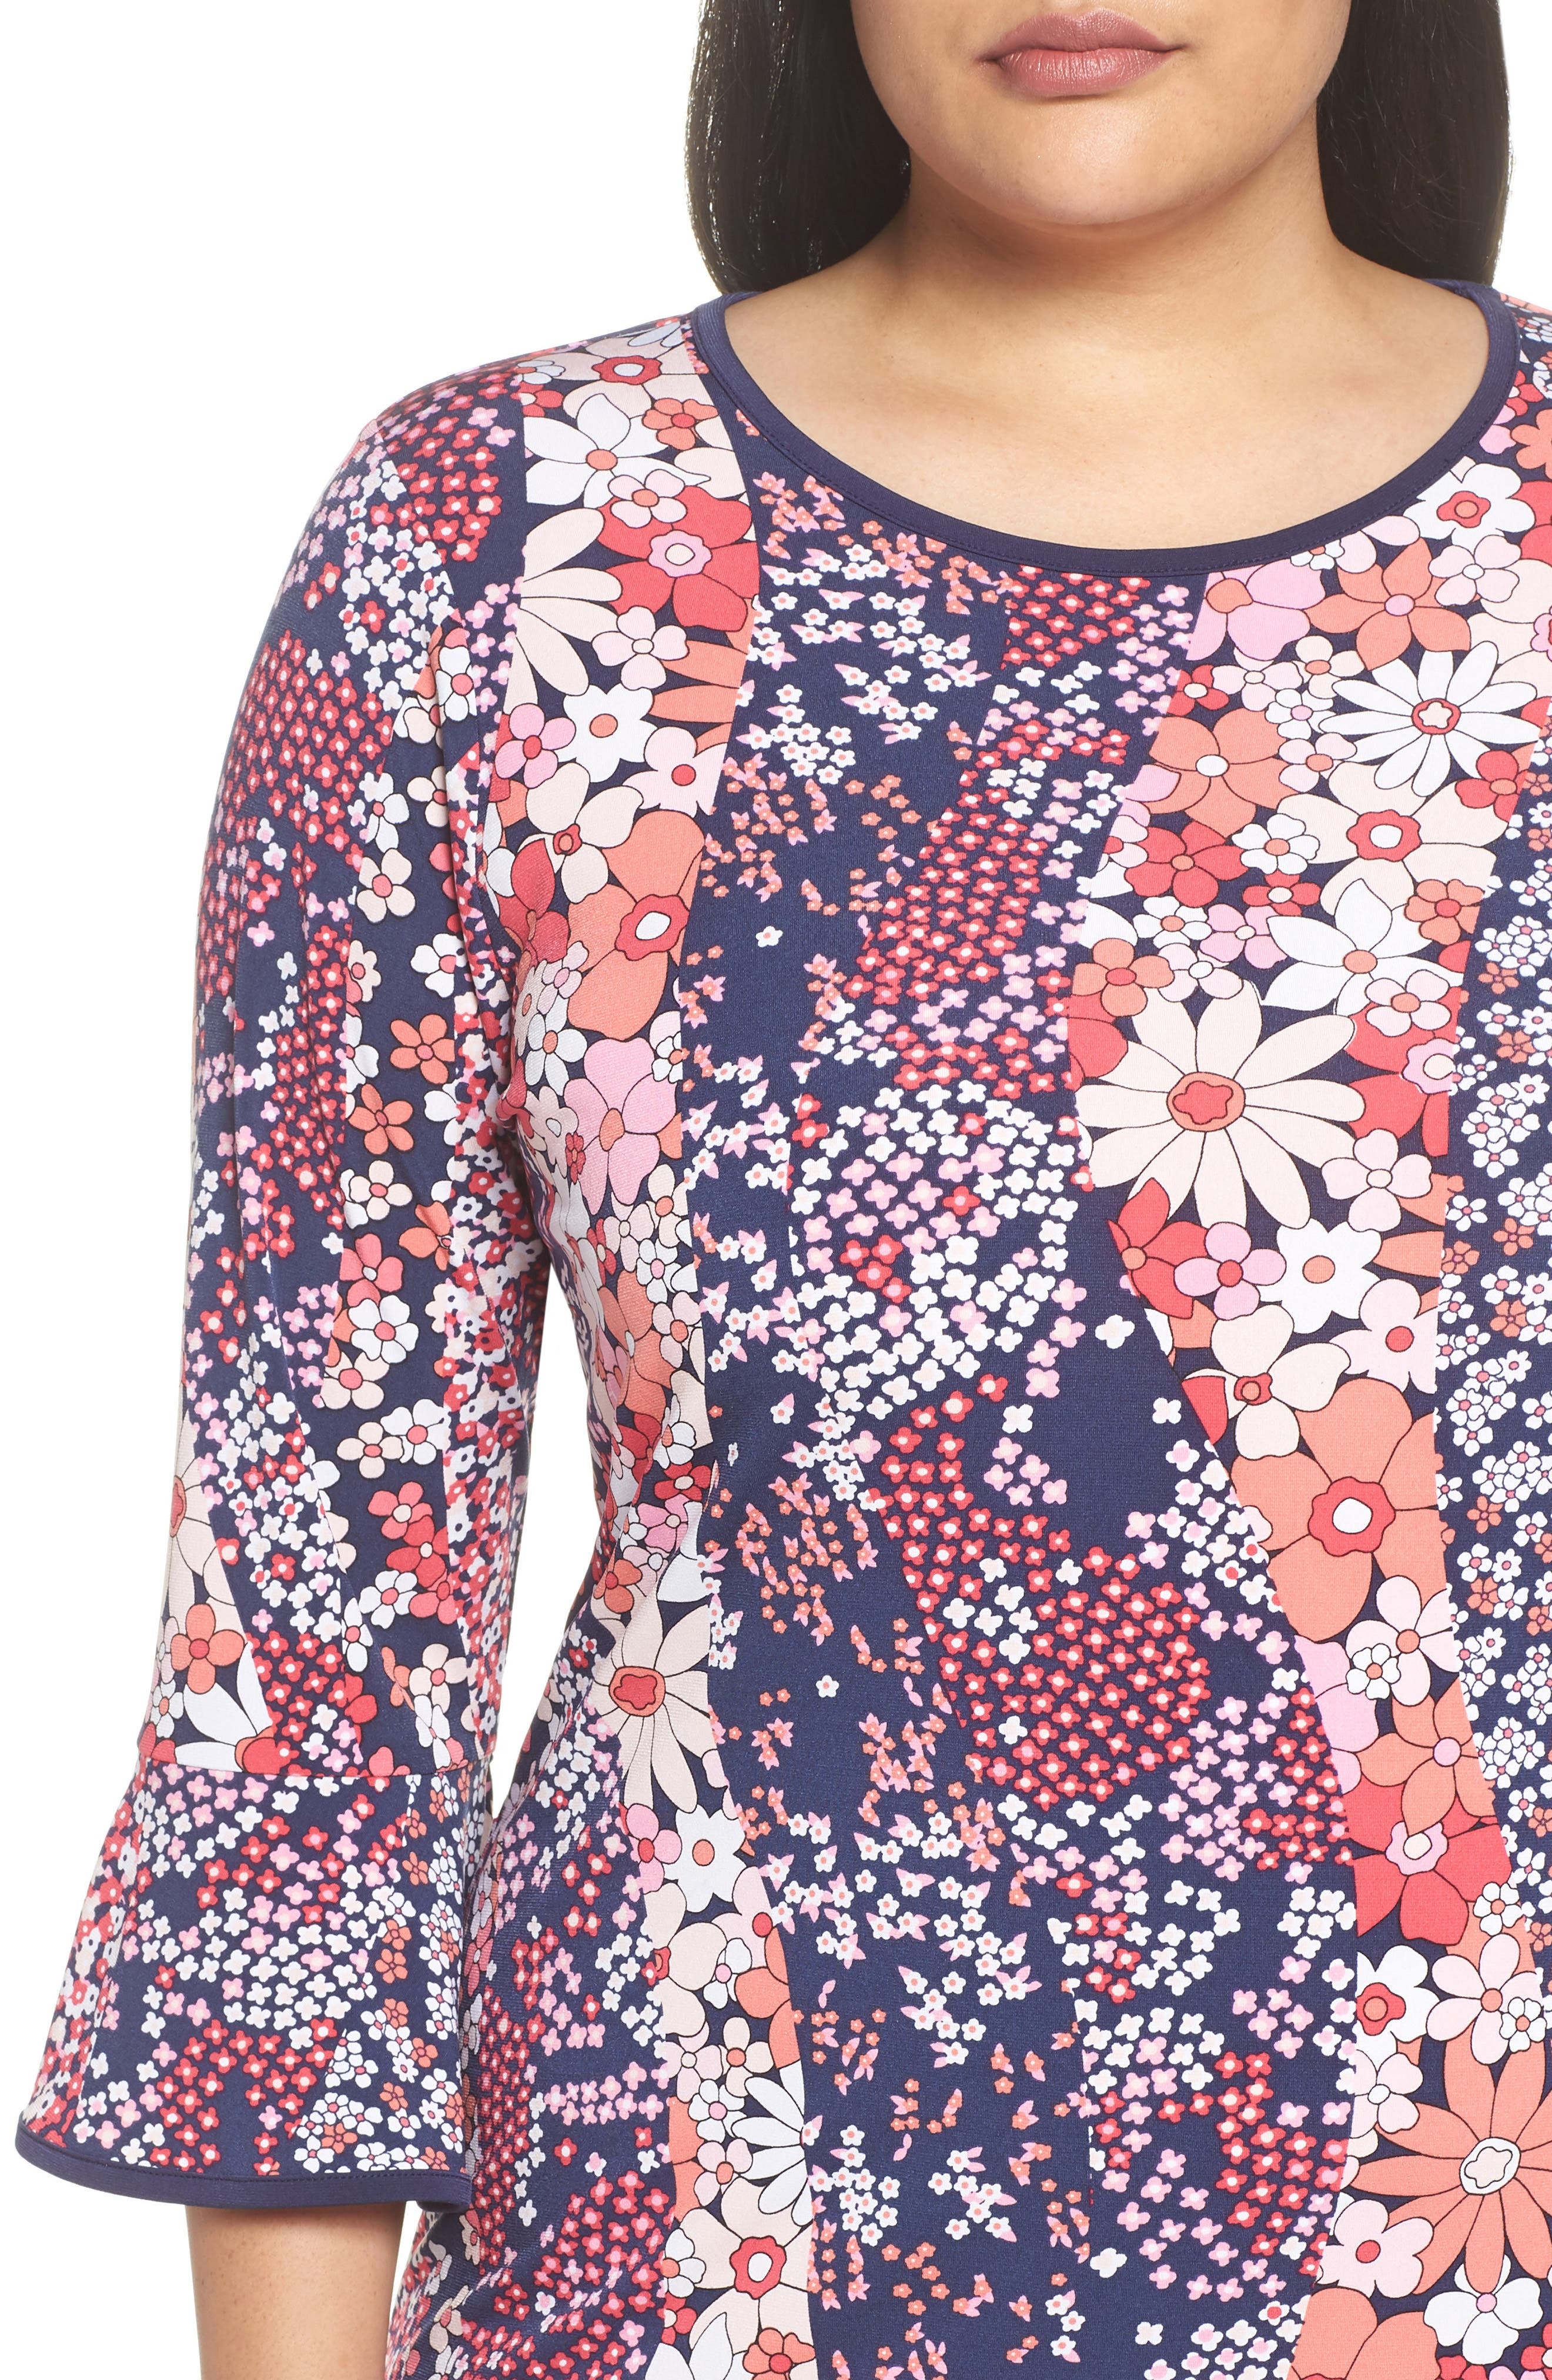 Patchwork Floral Bell Sleeve Shift Dress,                             Alternate thumbnail 4, color,                             True Navy/ Bright Blush